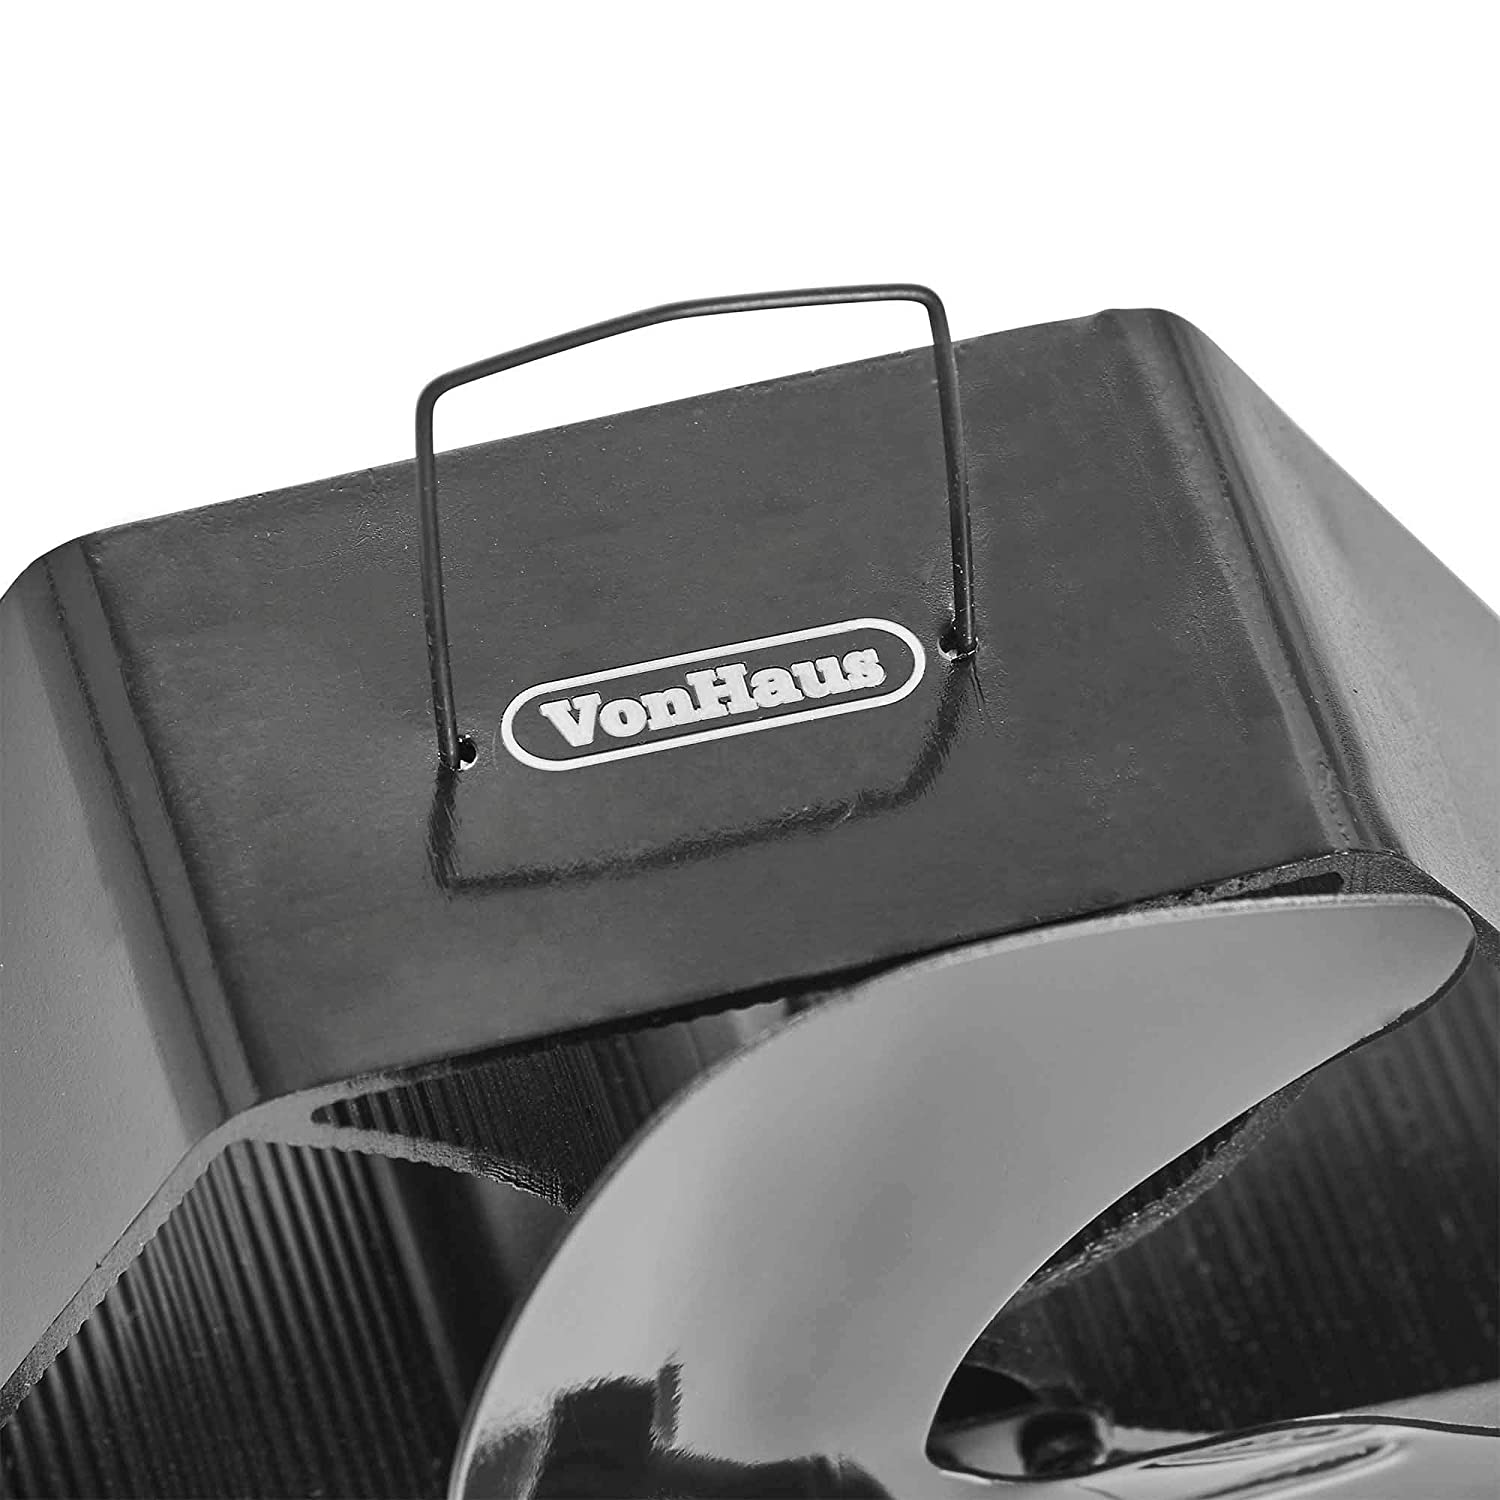 VonHaus XL 4 Blade Stove Fan 160-190 CFM Suitable for Use with Stoves Log Burners /& Fireplaces Thermoelectric//Heat-Powered//Eco-Friendly//Economical Circulates Heat for Improved Distribution